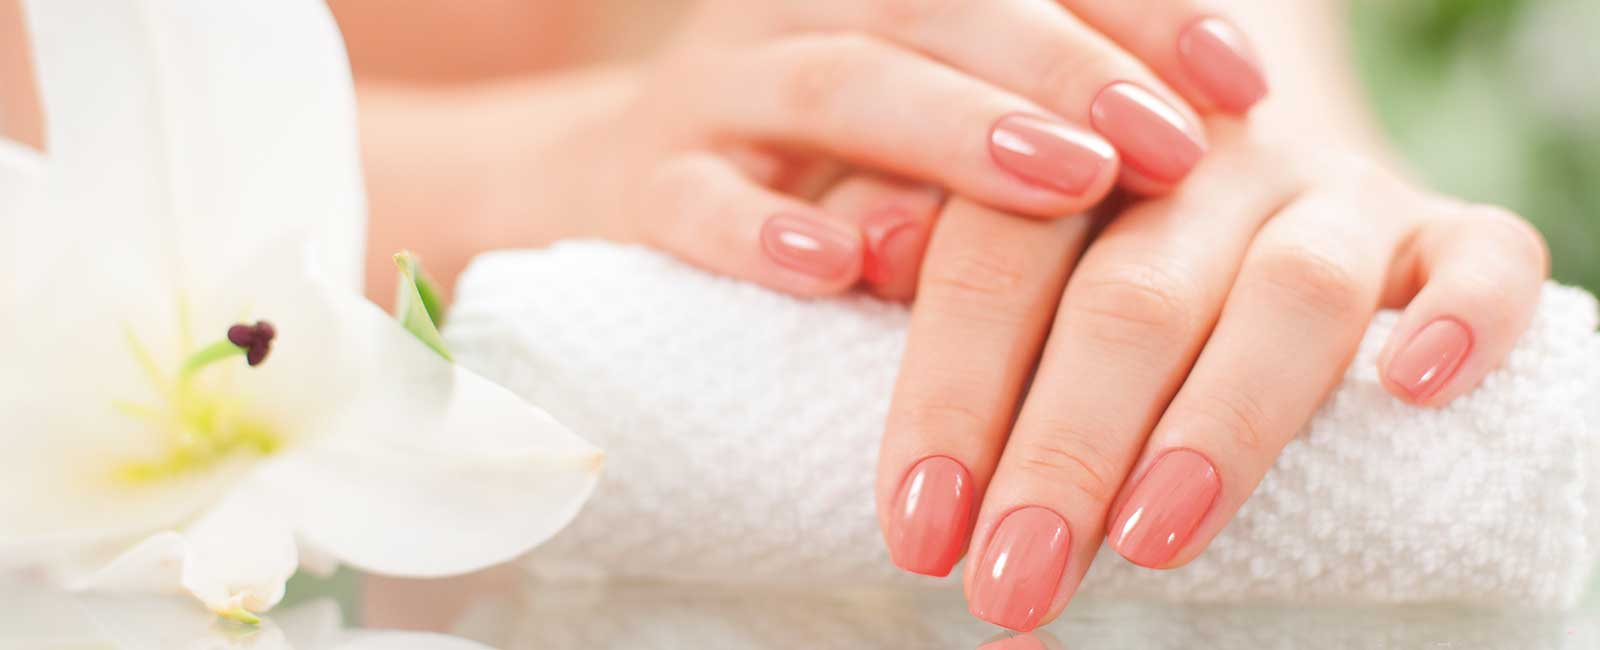 Hand and Foot Care - Alina's Salon SE Calgary